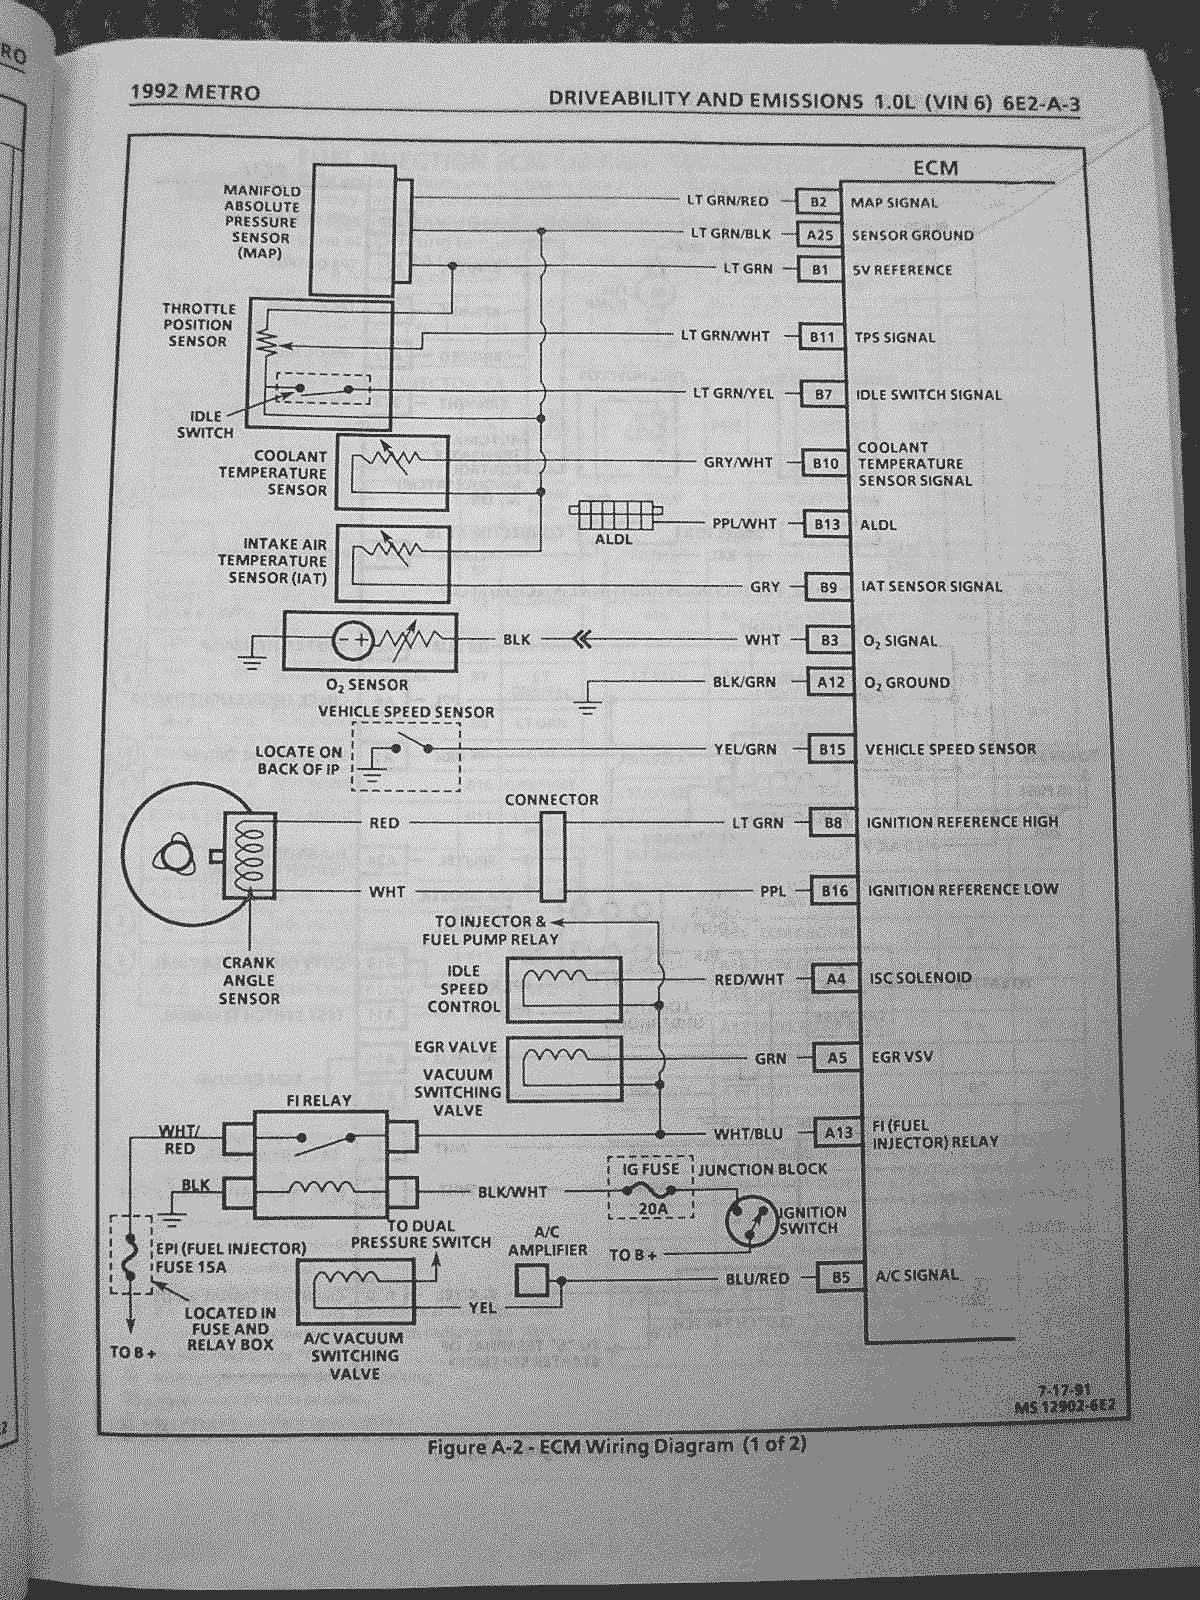 Suzuki Swift Wiring Diagram 2006 Schematics Ts185 Online Dirt Bike